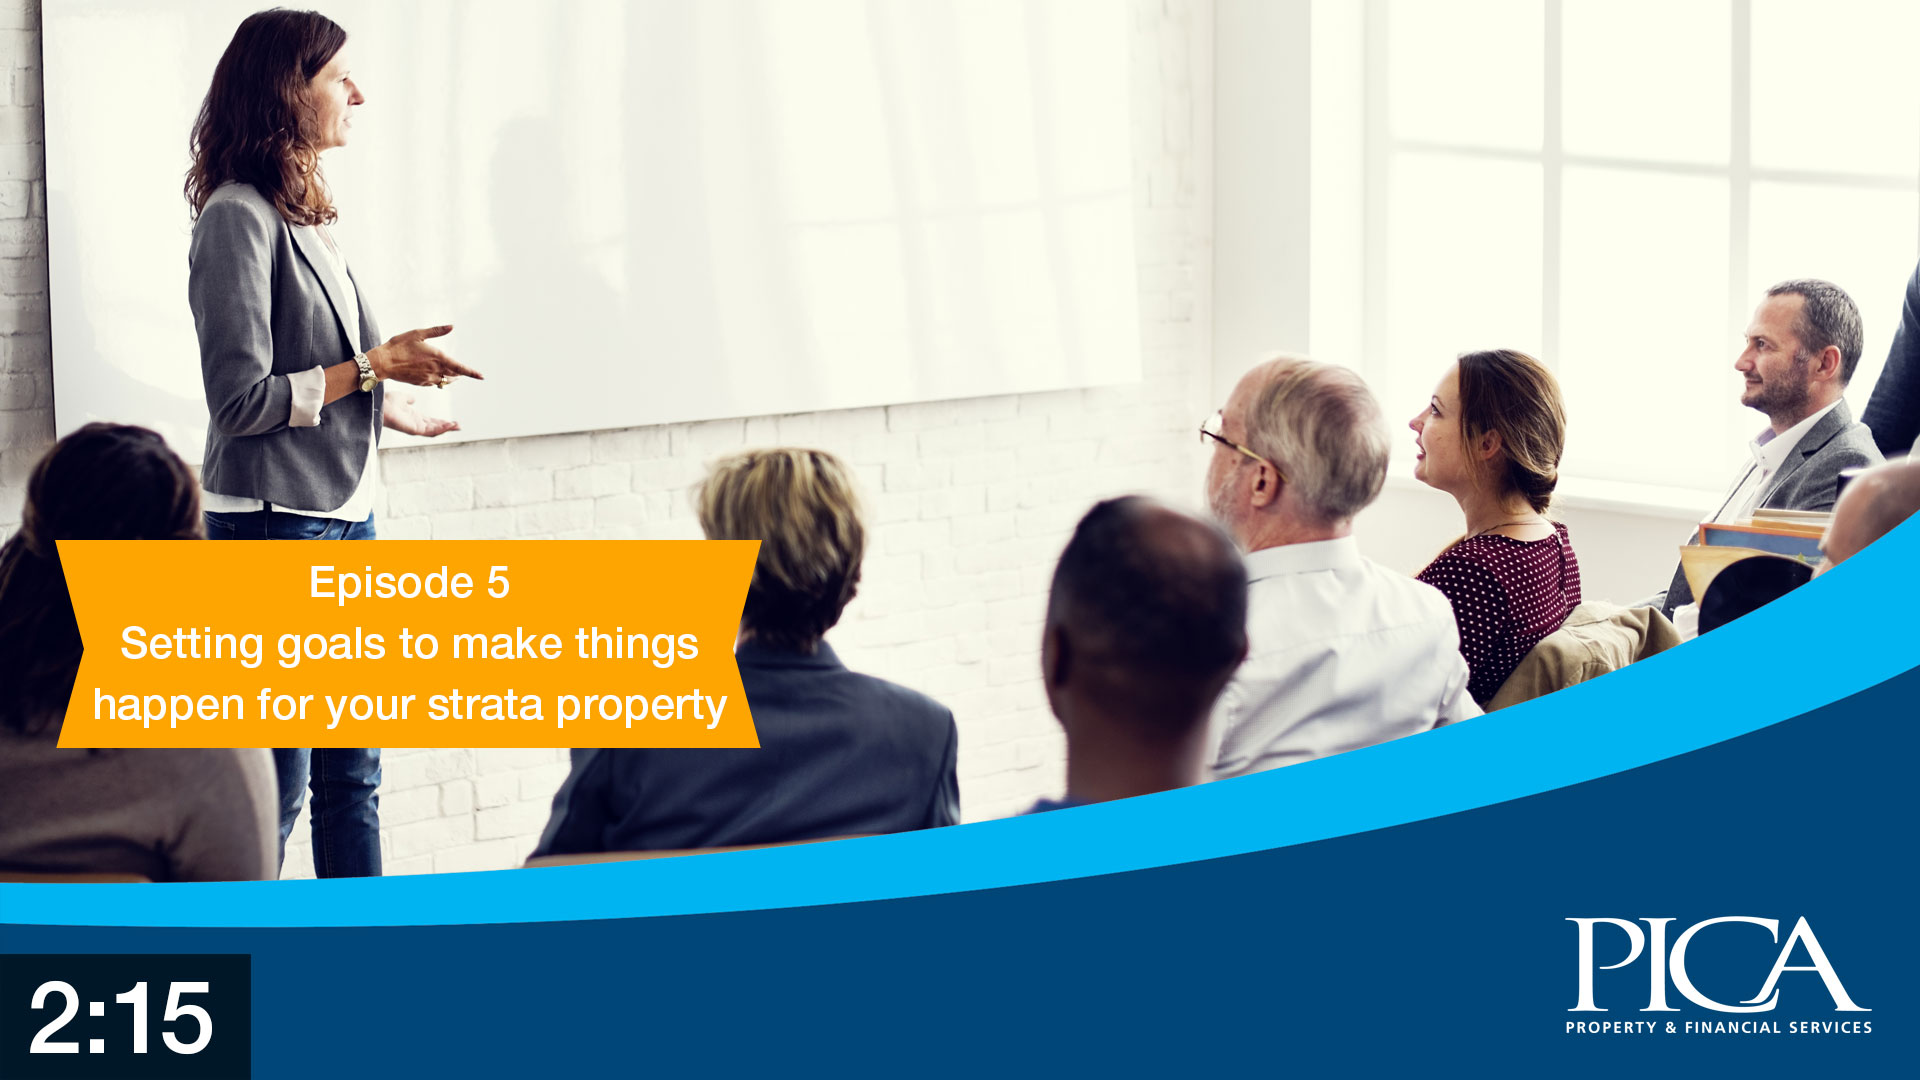 StrataFAQ education videos - Setting goals to make things happen for your strata property